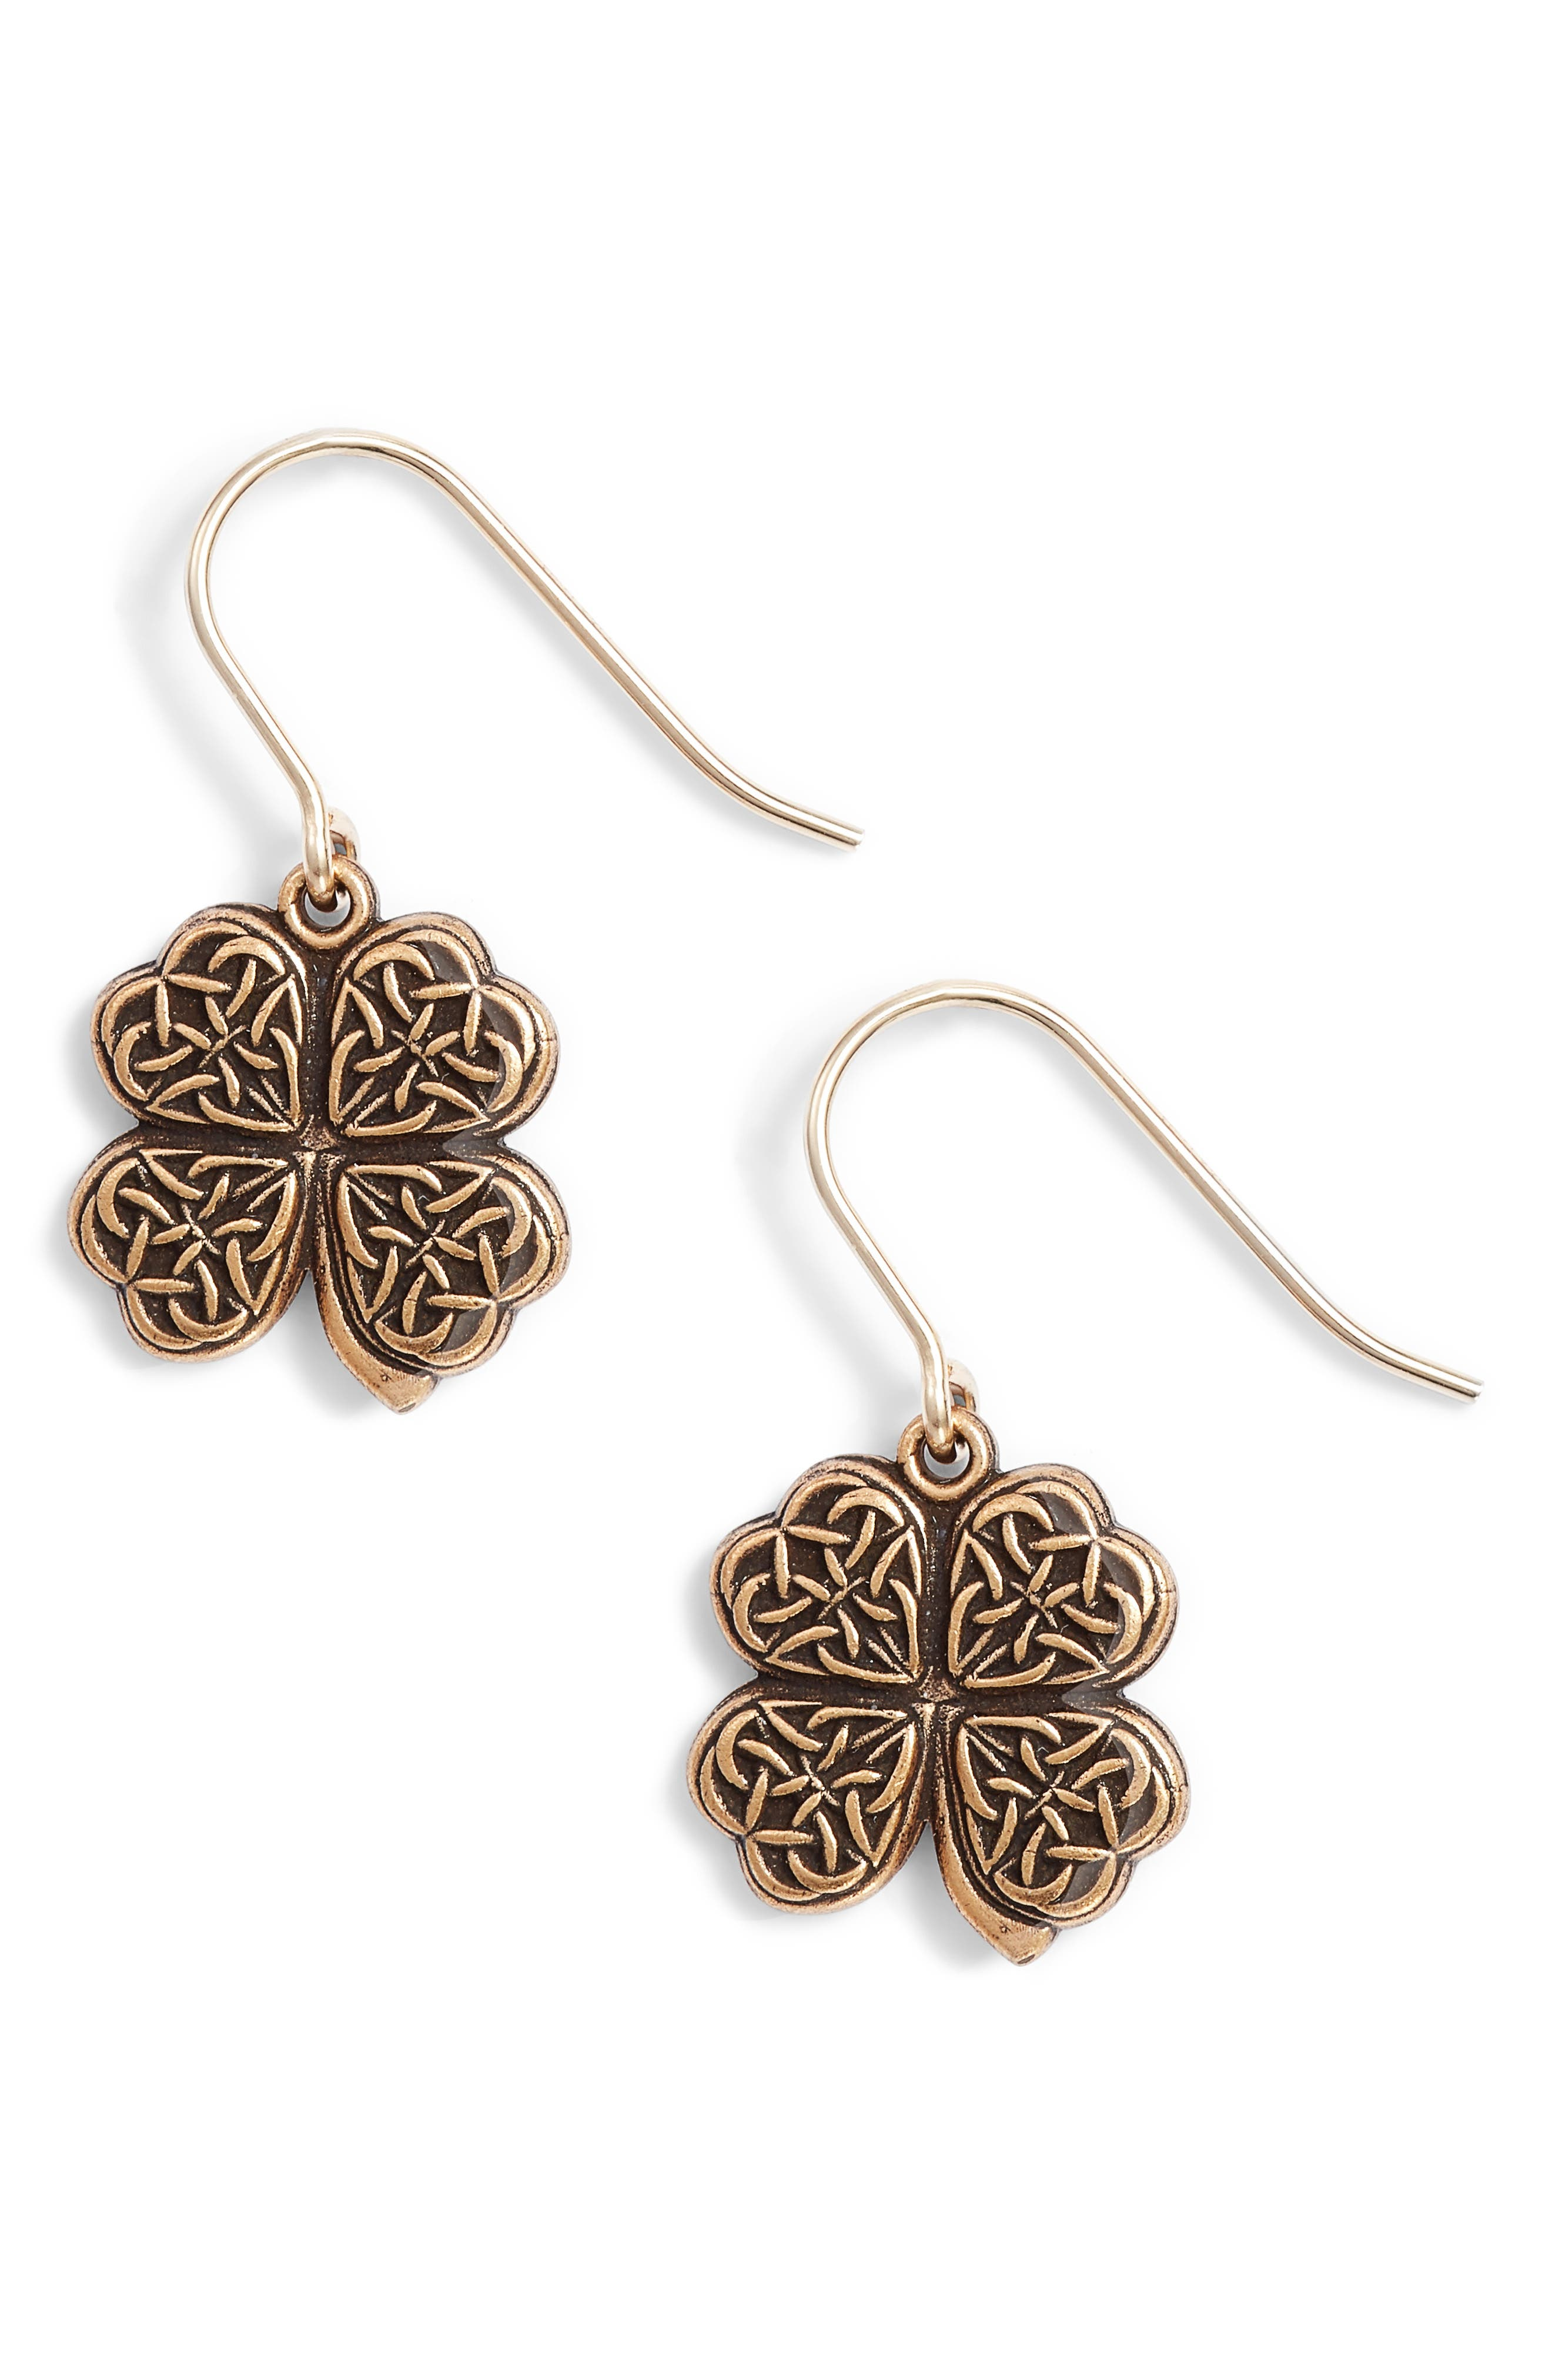 Four Leaf Clover Drop Earrings,                             Main thumbnail 1, color,                             Gold